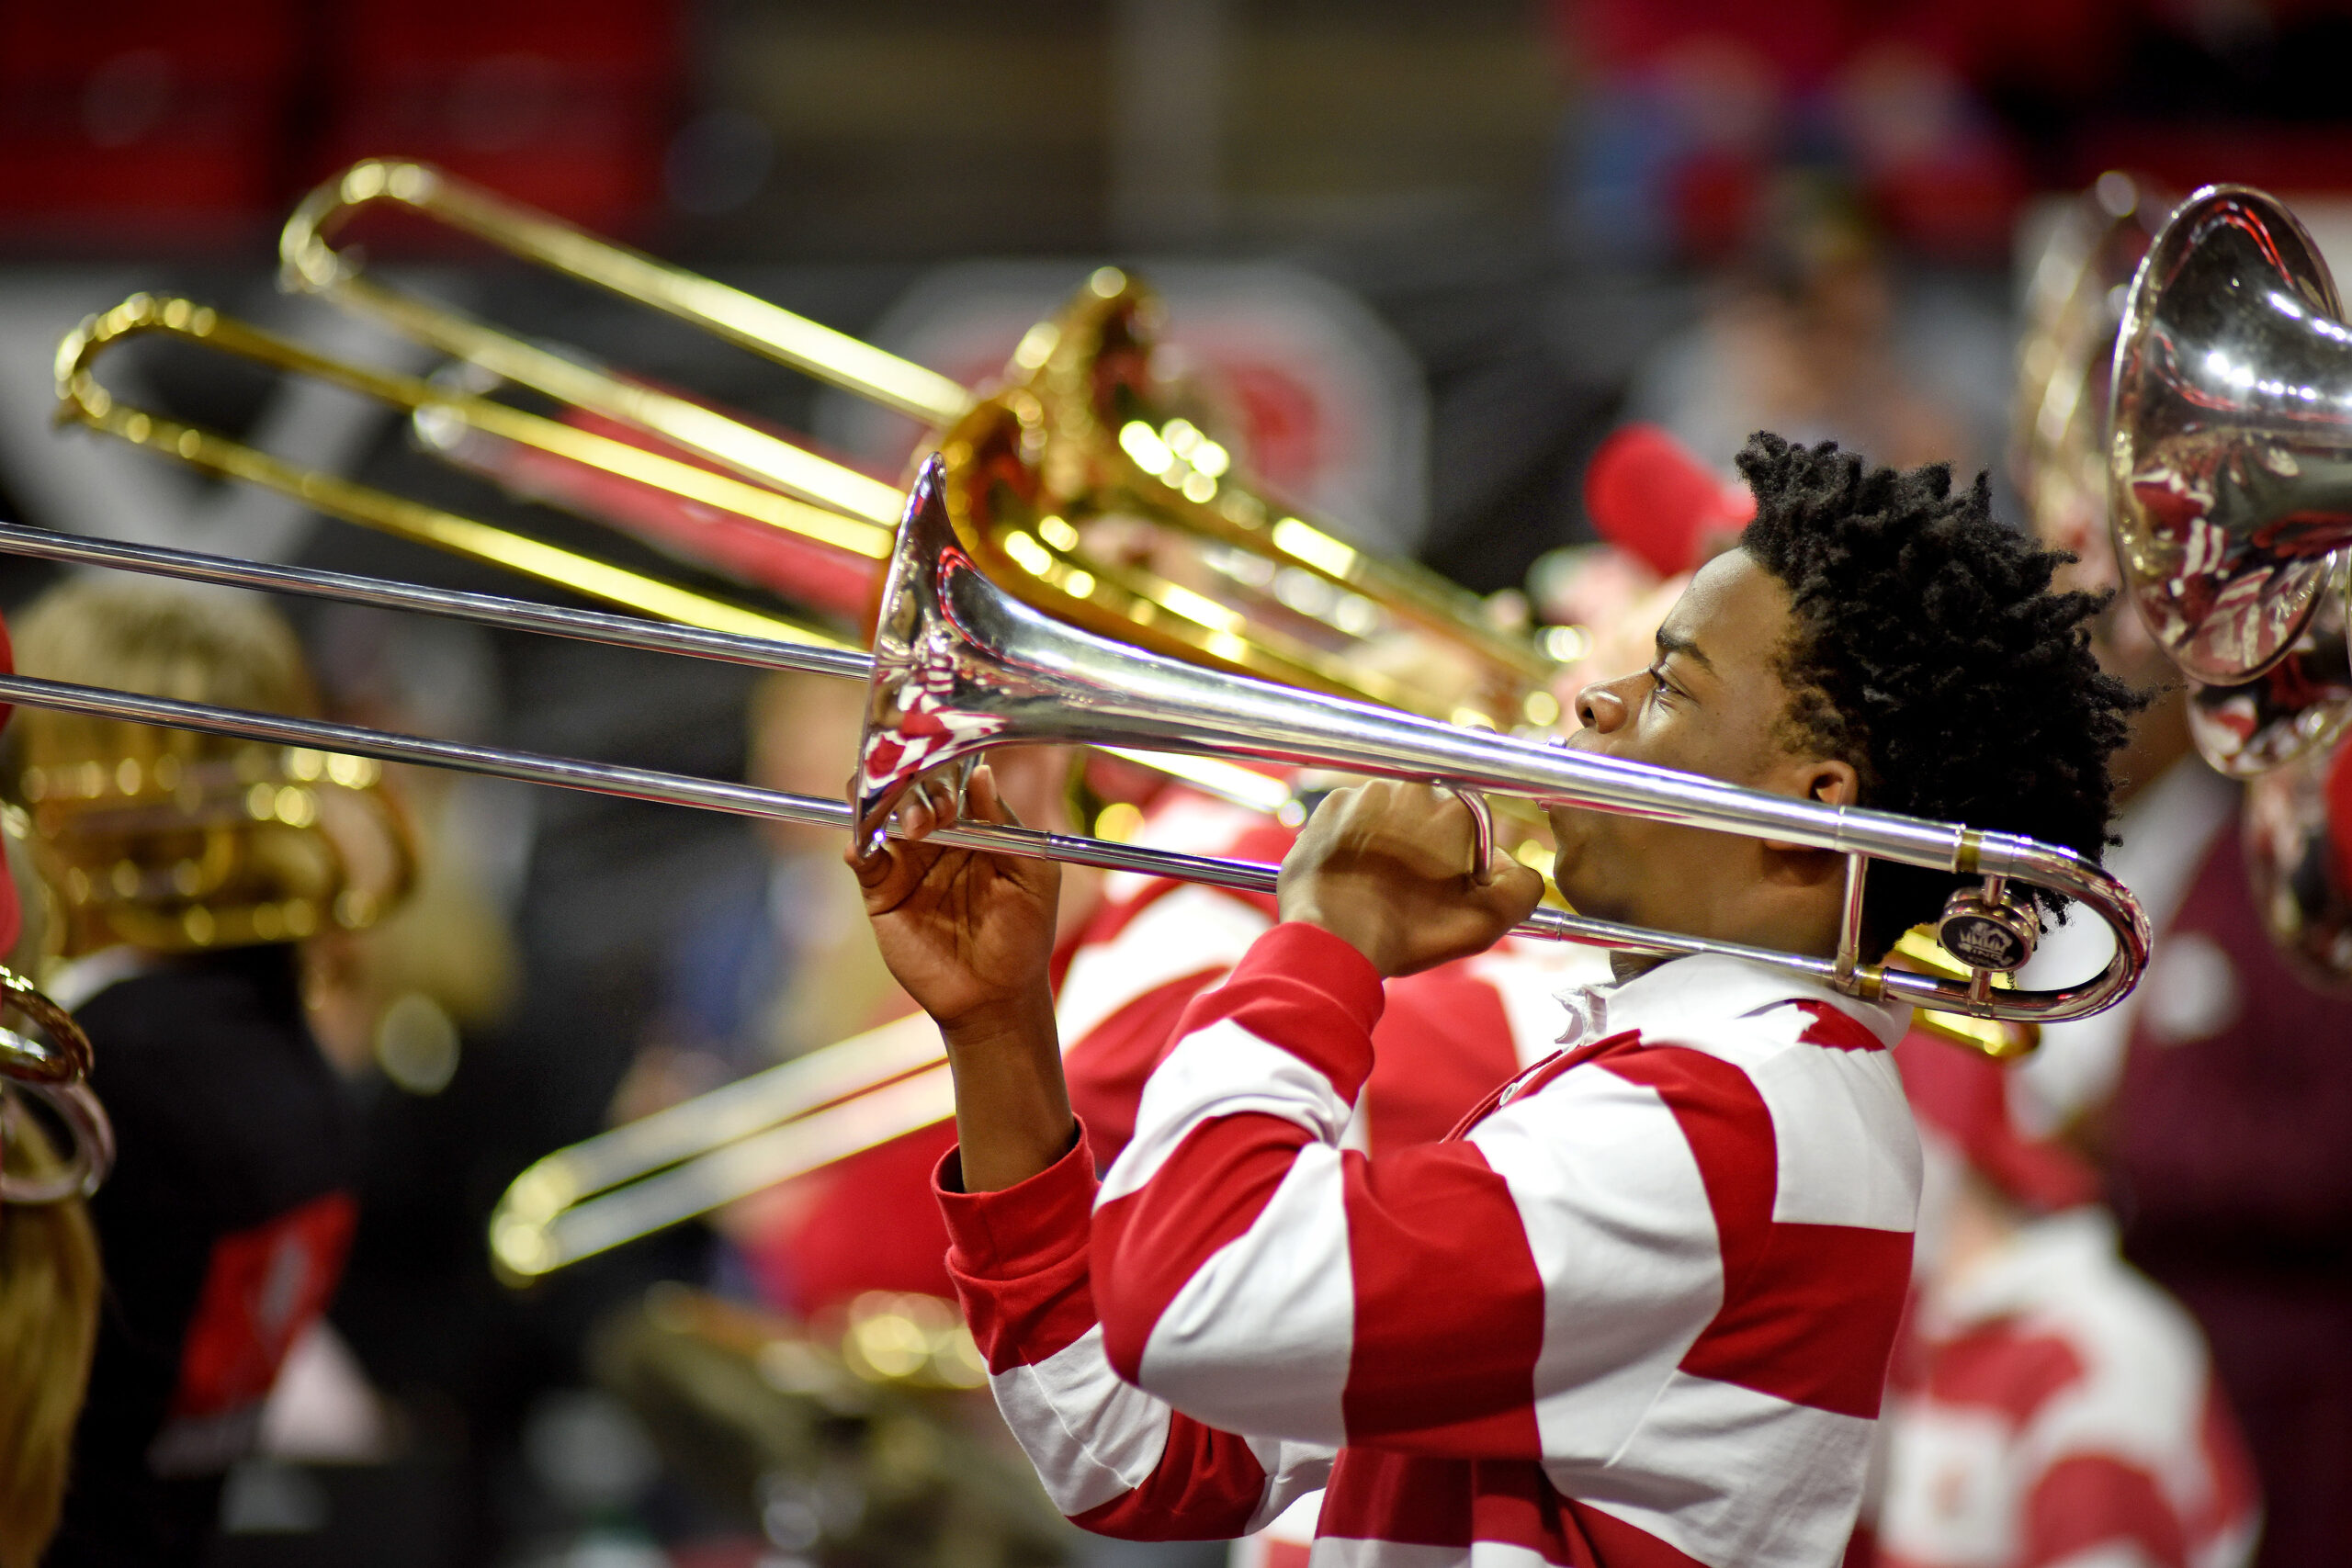 NCState band playing